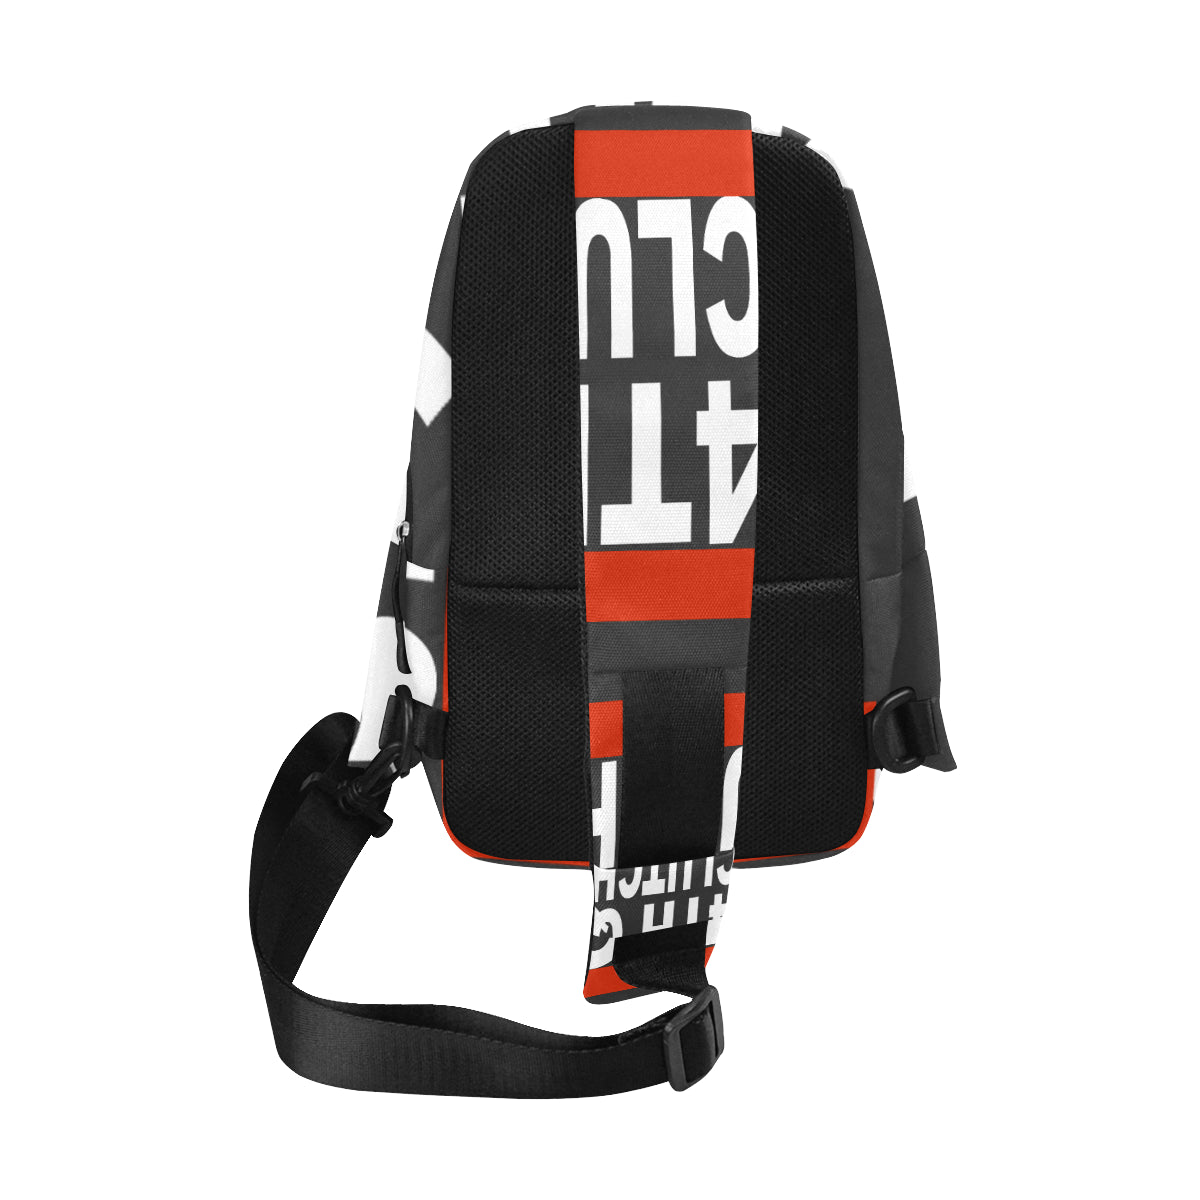 4THQCLUTCH Sling Bag